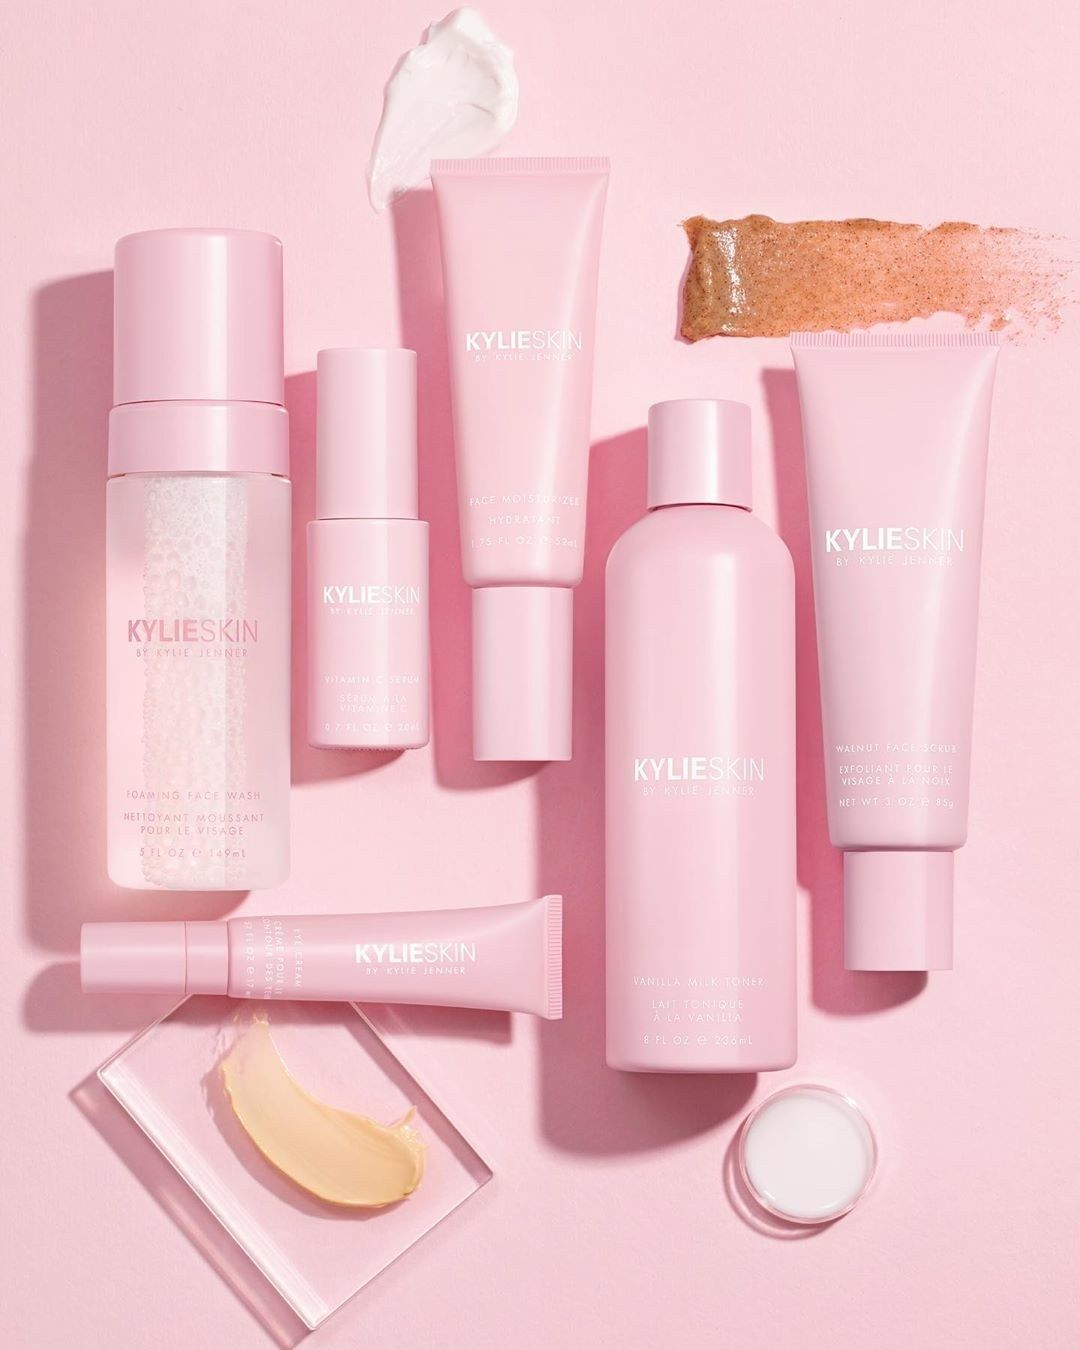 Kylie Jenner's First Skin-Care Products Revealed — See All of the Launches